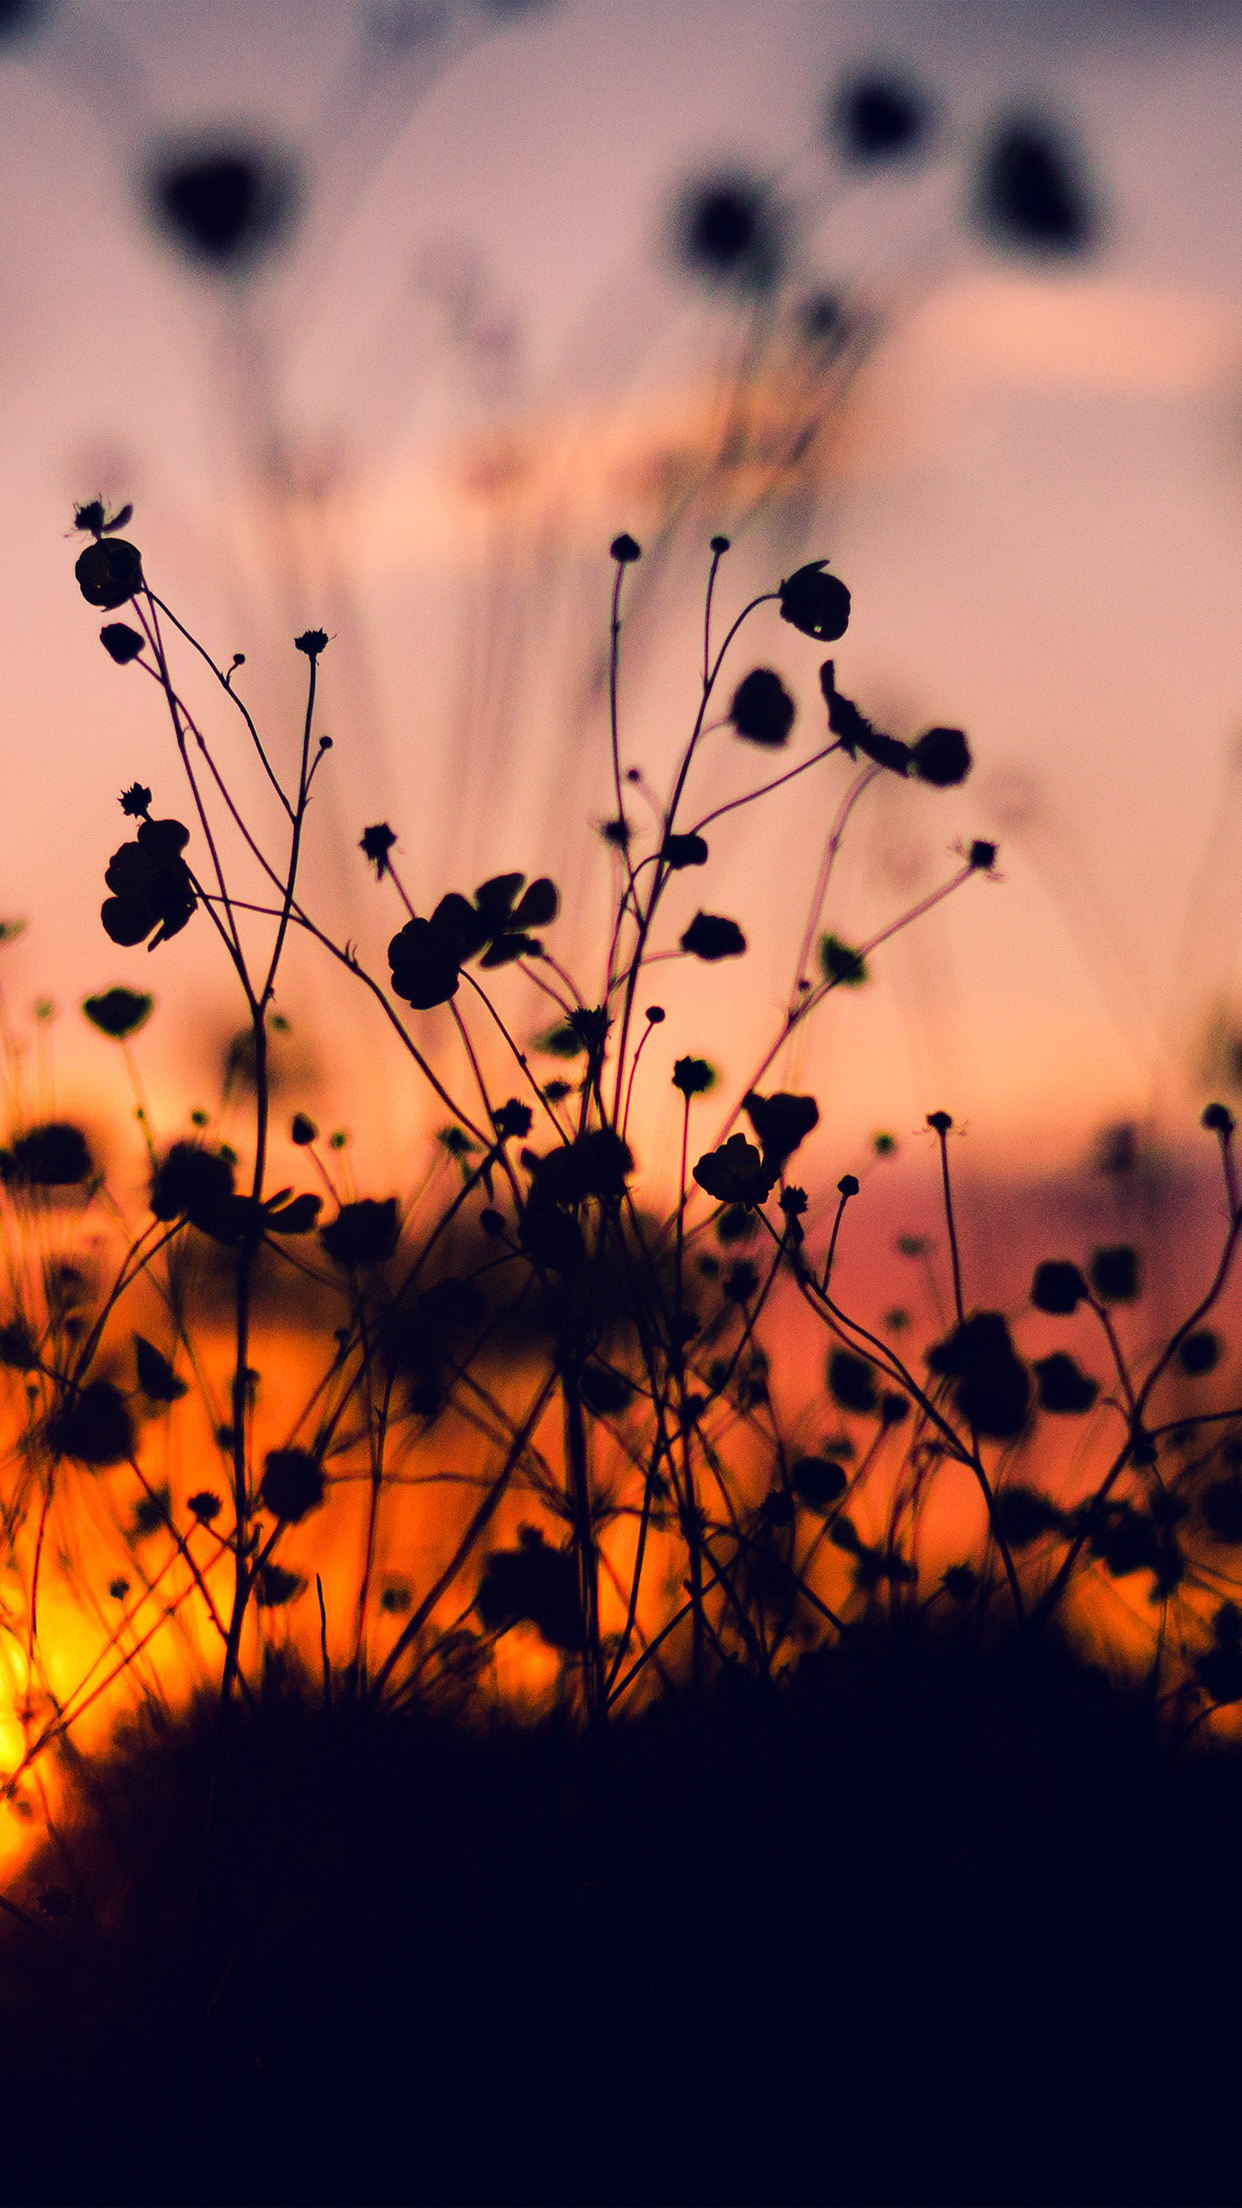 Fall Fields Wallpaper For Iphone Papers Co Iphone Wallpaper Mv64 Night Nature Flower